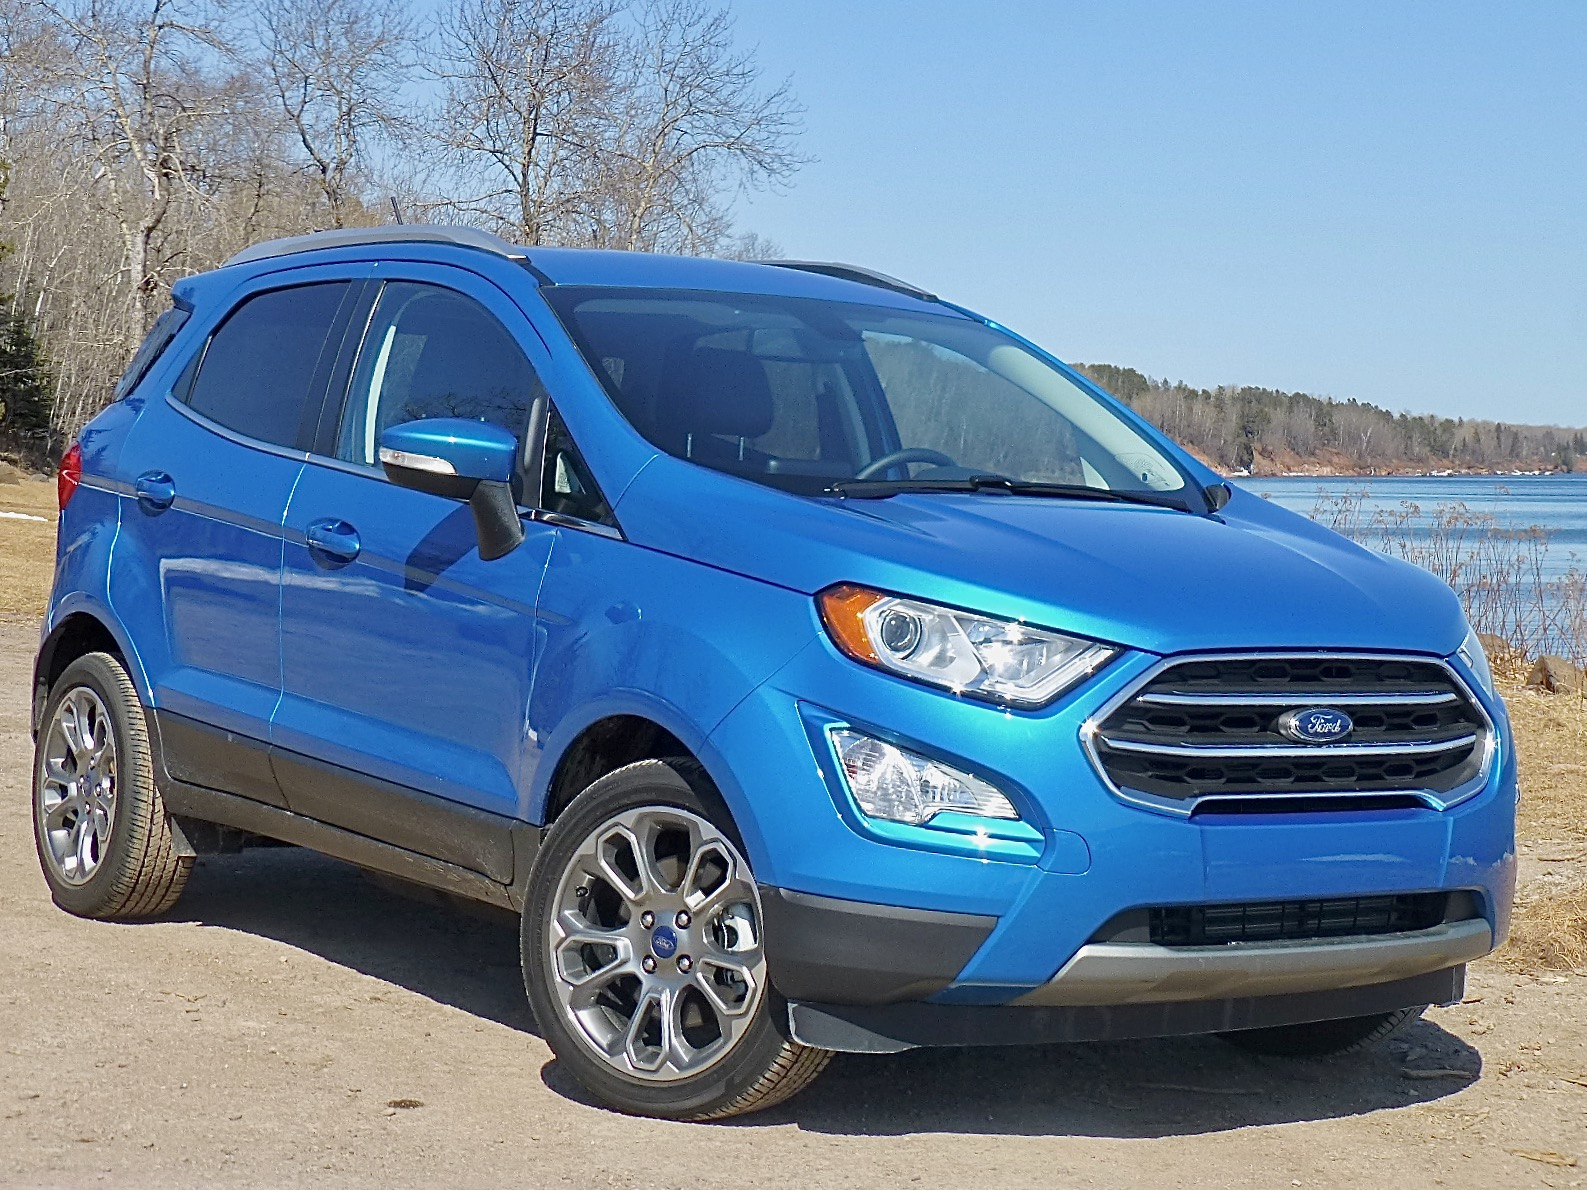 At the most-compact end of the spectrum is Ford's new EcoSport, with a 1.0-liter turbocharged 3.